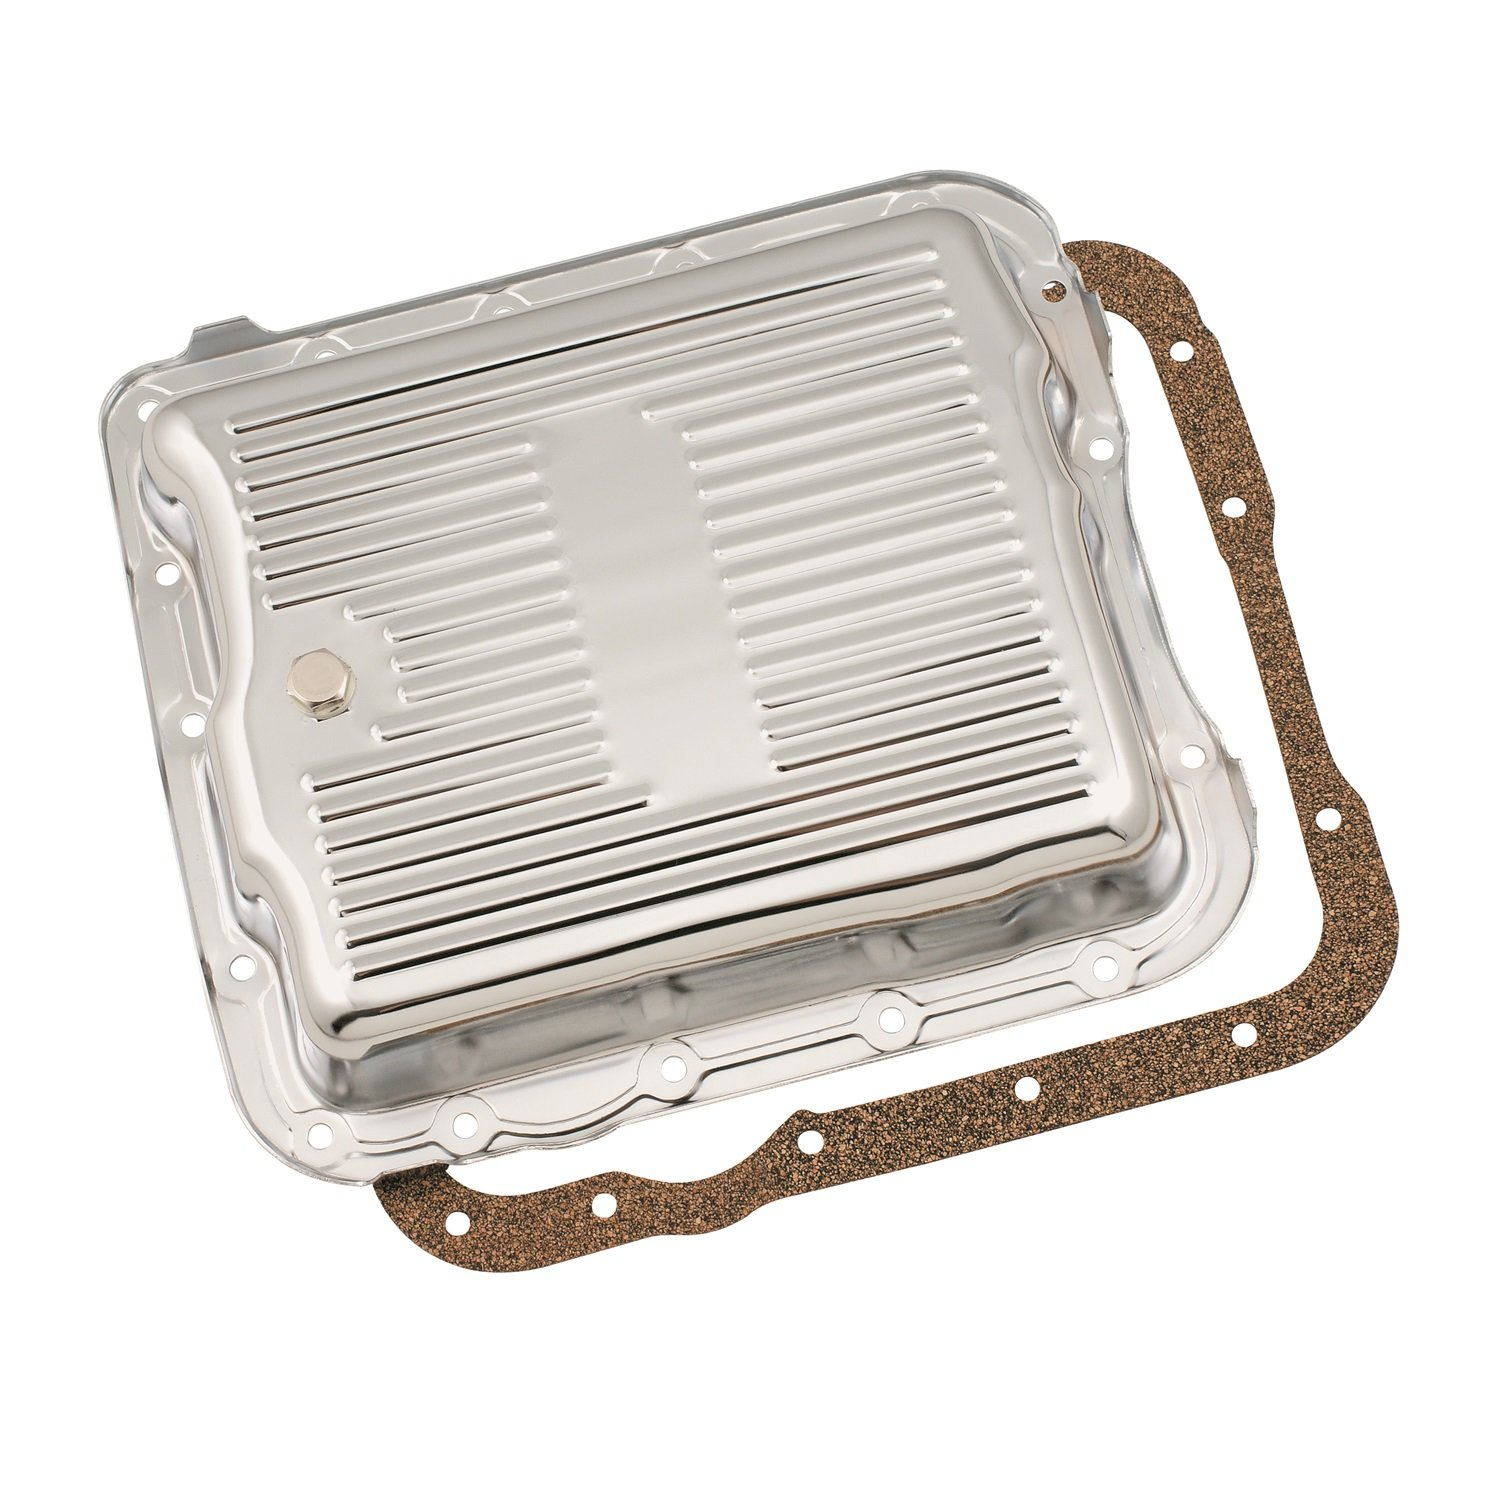 Mr. Gasket 9732 Automatic Transmission Oil Pan by Mr. Gasket